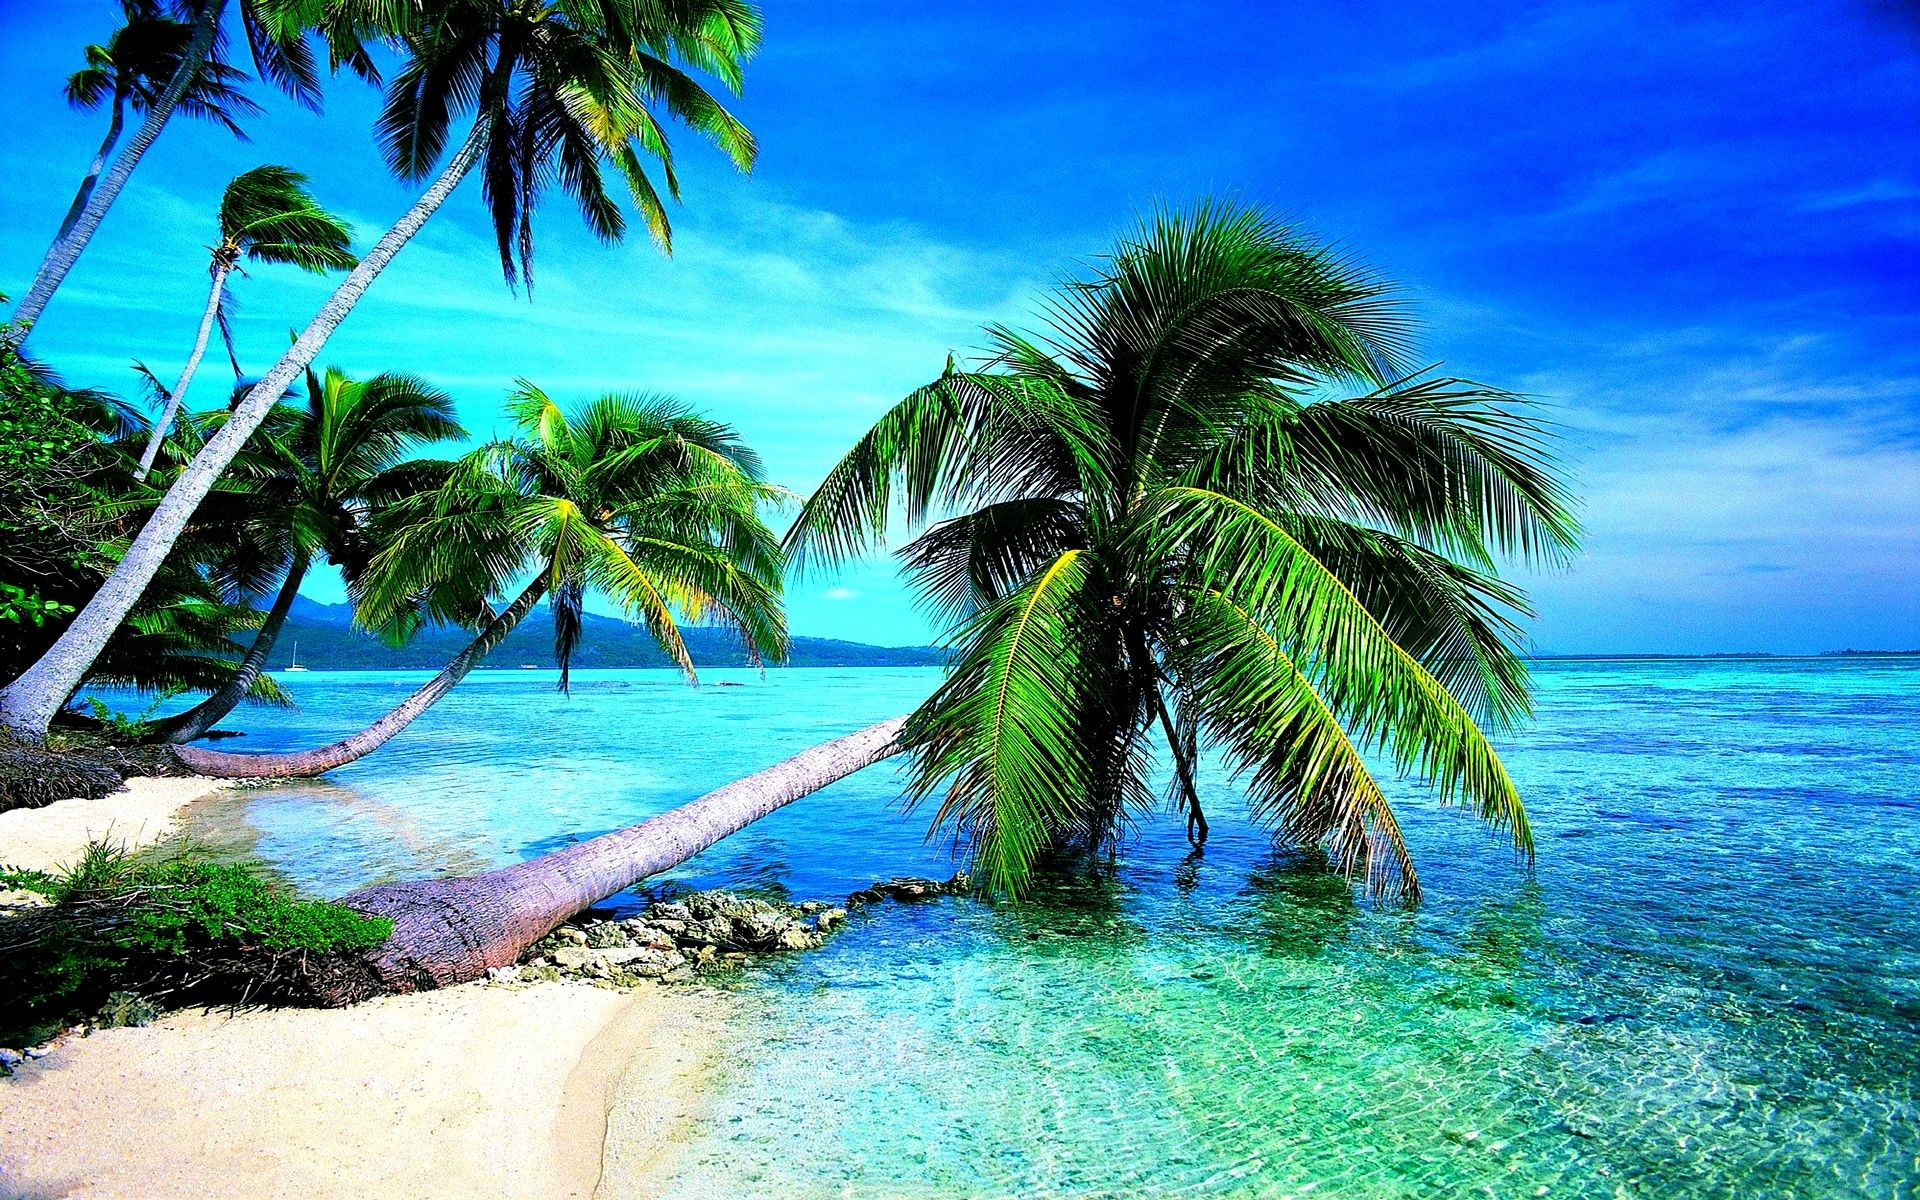 Desktop Backgrounds Tropical Desktop Backgrounds Tropical Hd Download Download Desktop Backgrou Beach Wallpaper Attractive Wallpapers Hd Wallpapers For Pc